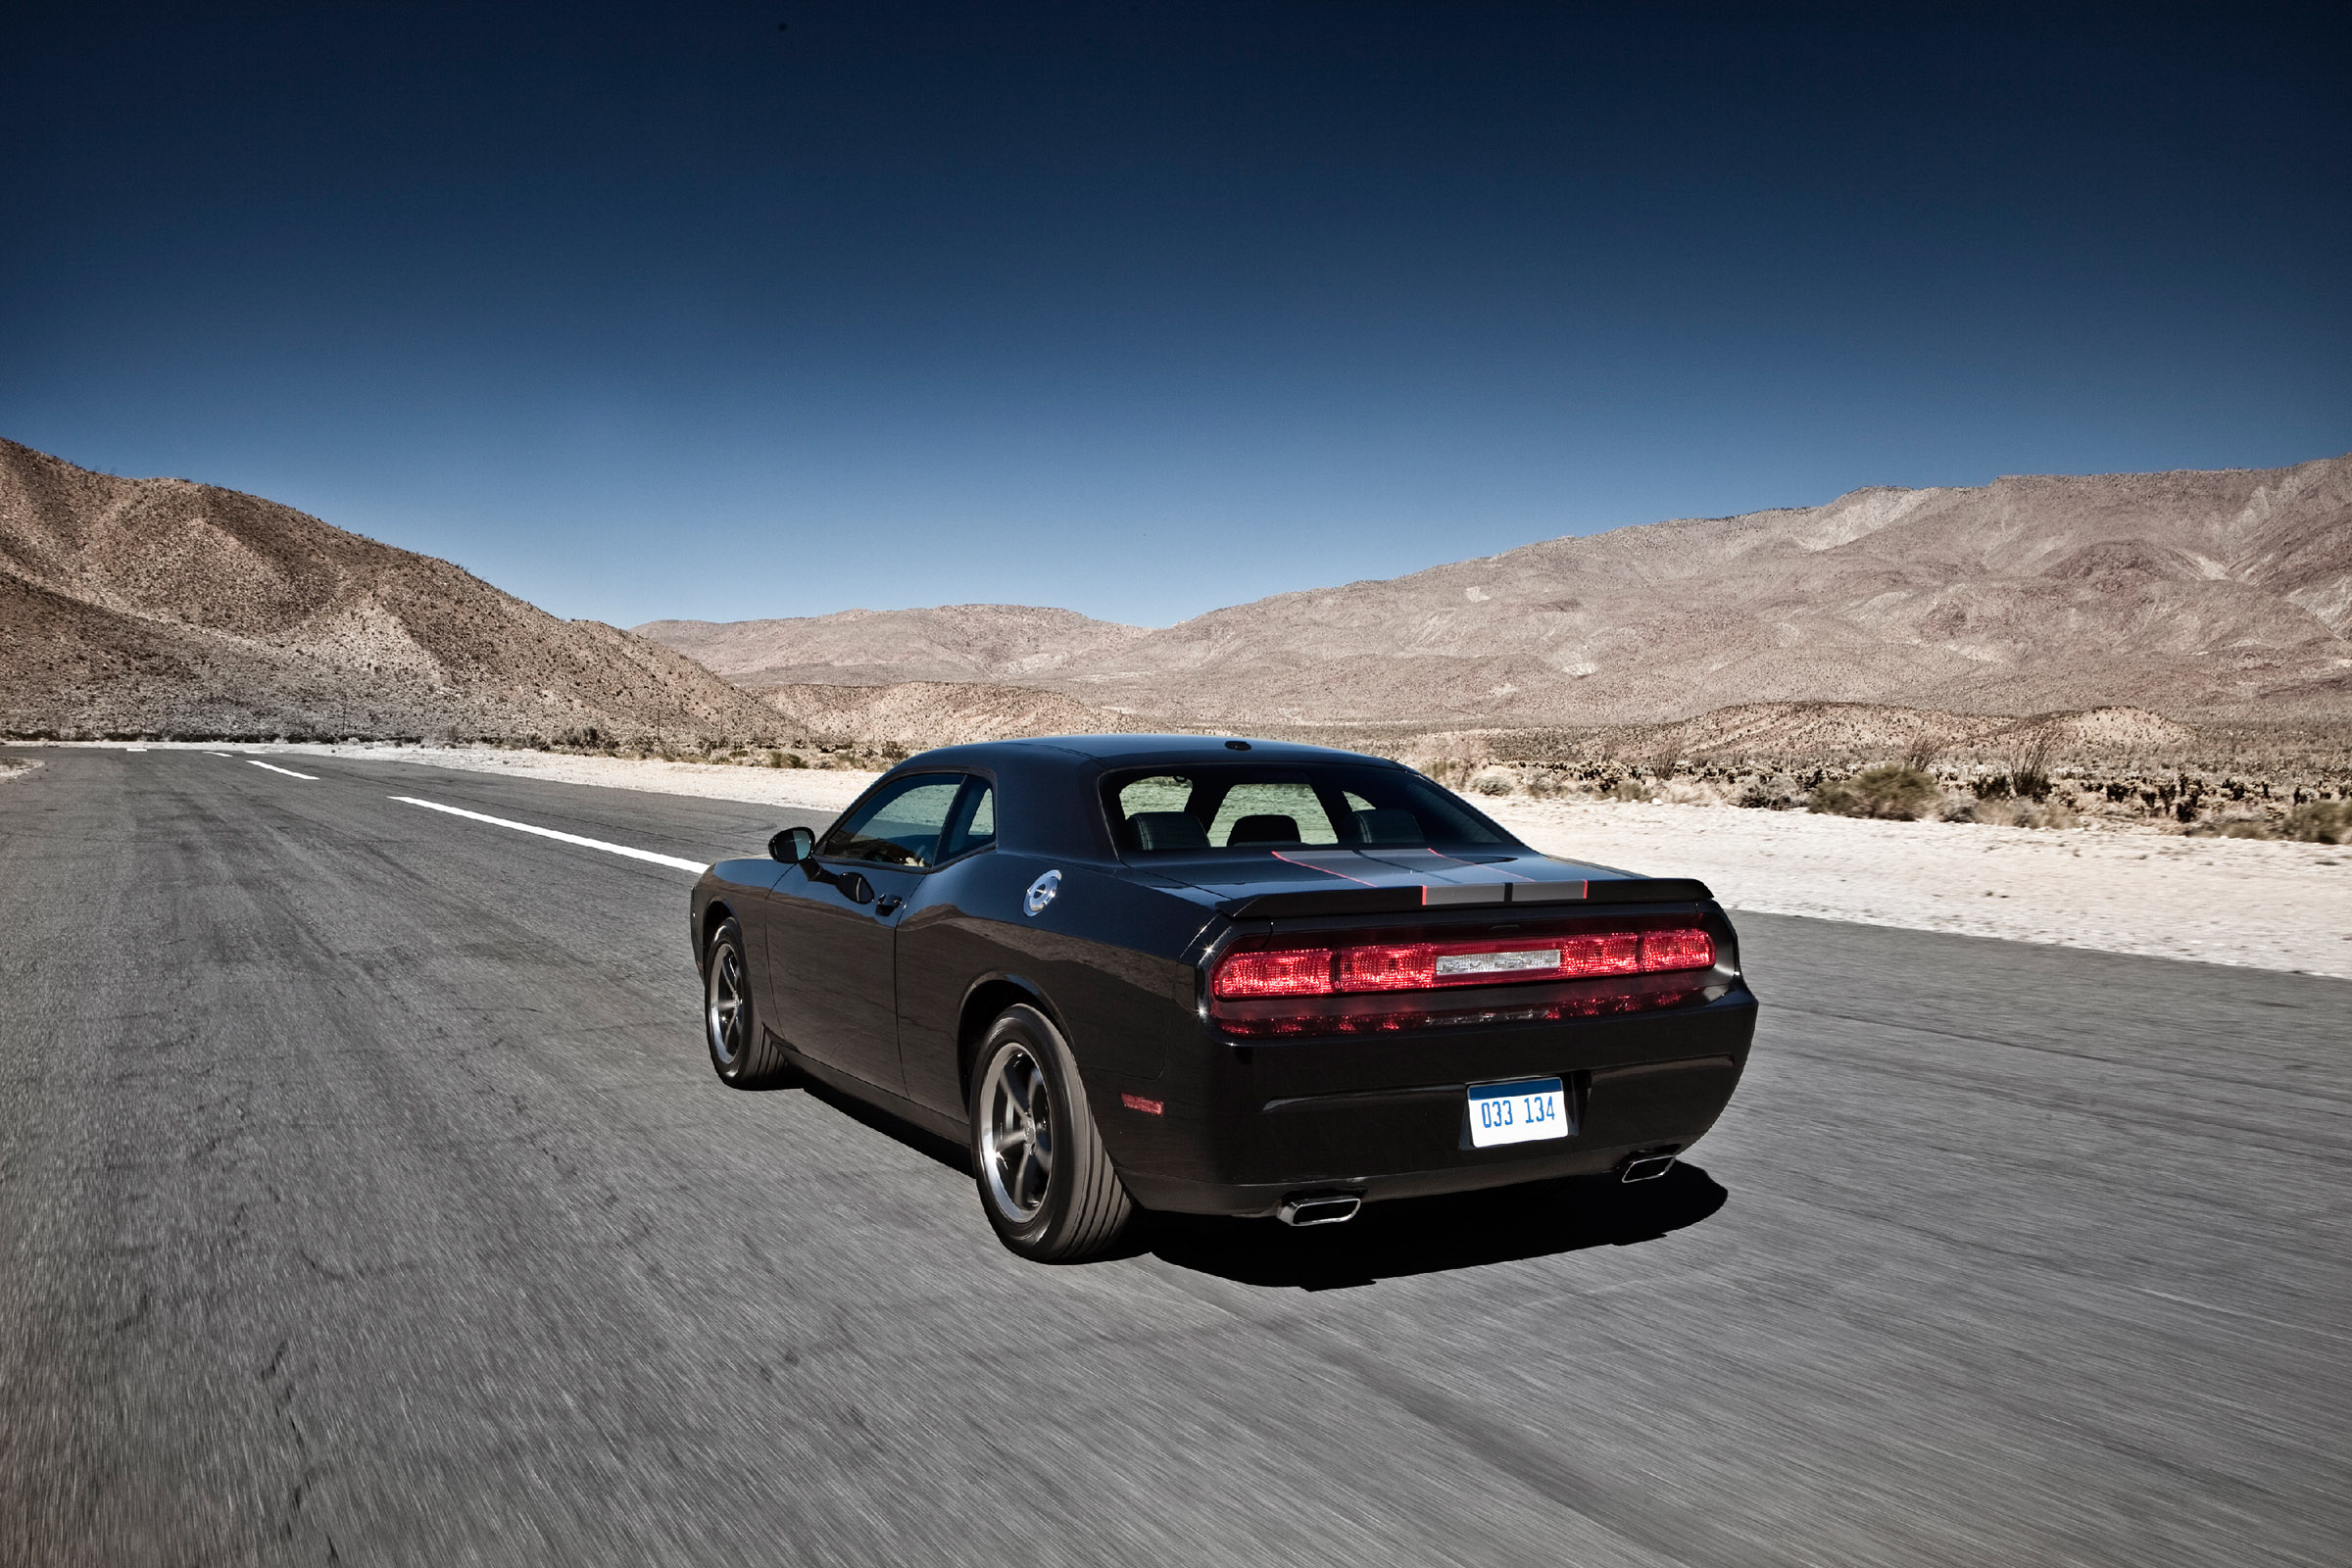 2011 Dodge Challenger Rt Picture 59785